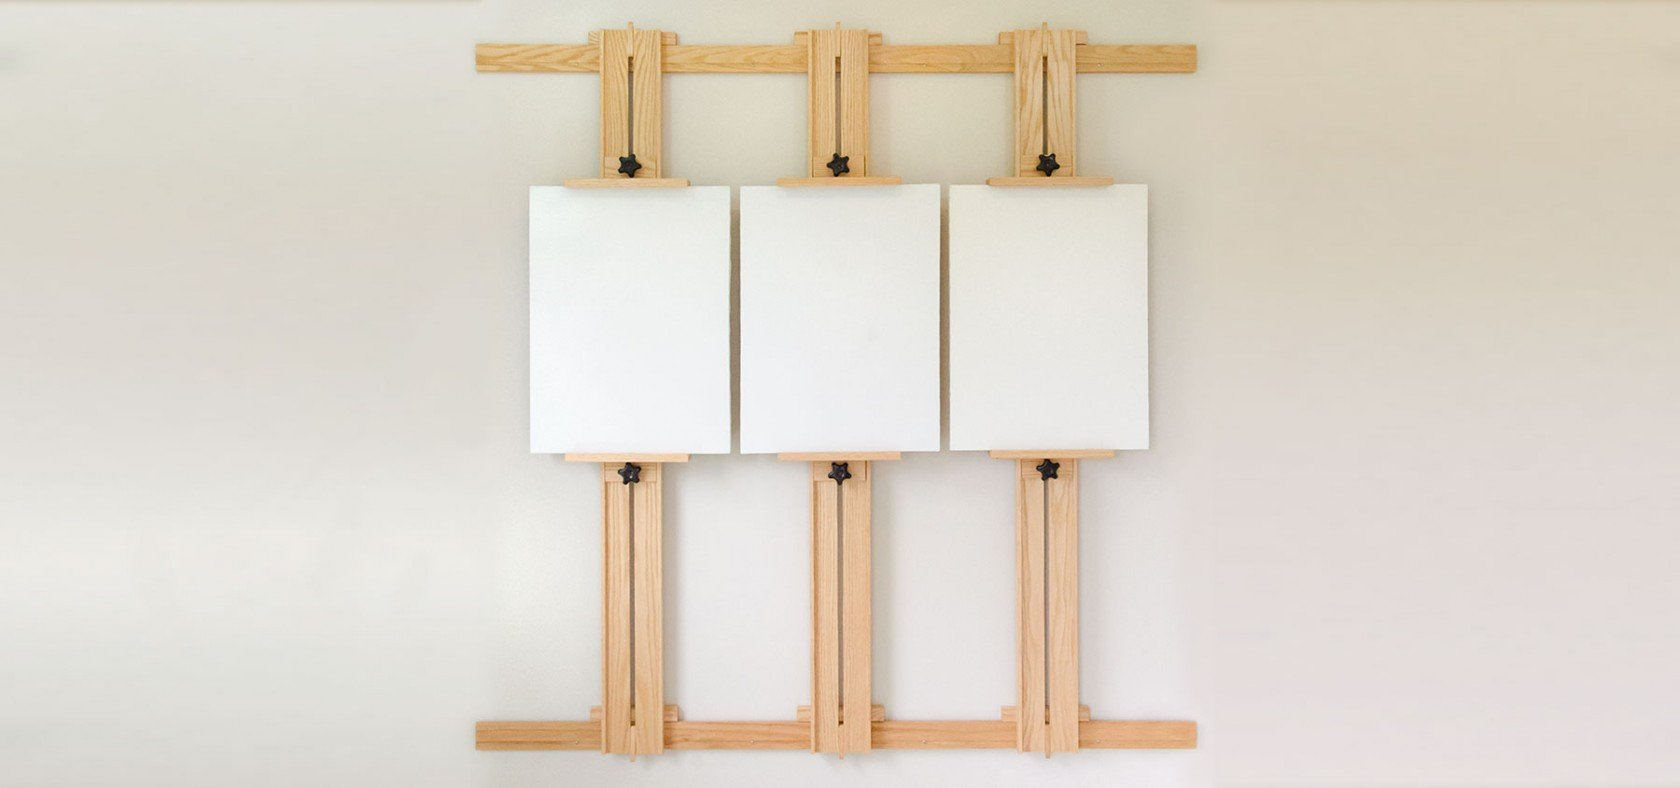 Showcase 66 Inch Wall Easel with Three Canvases